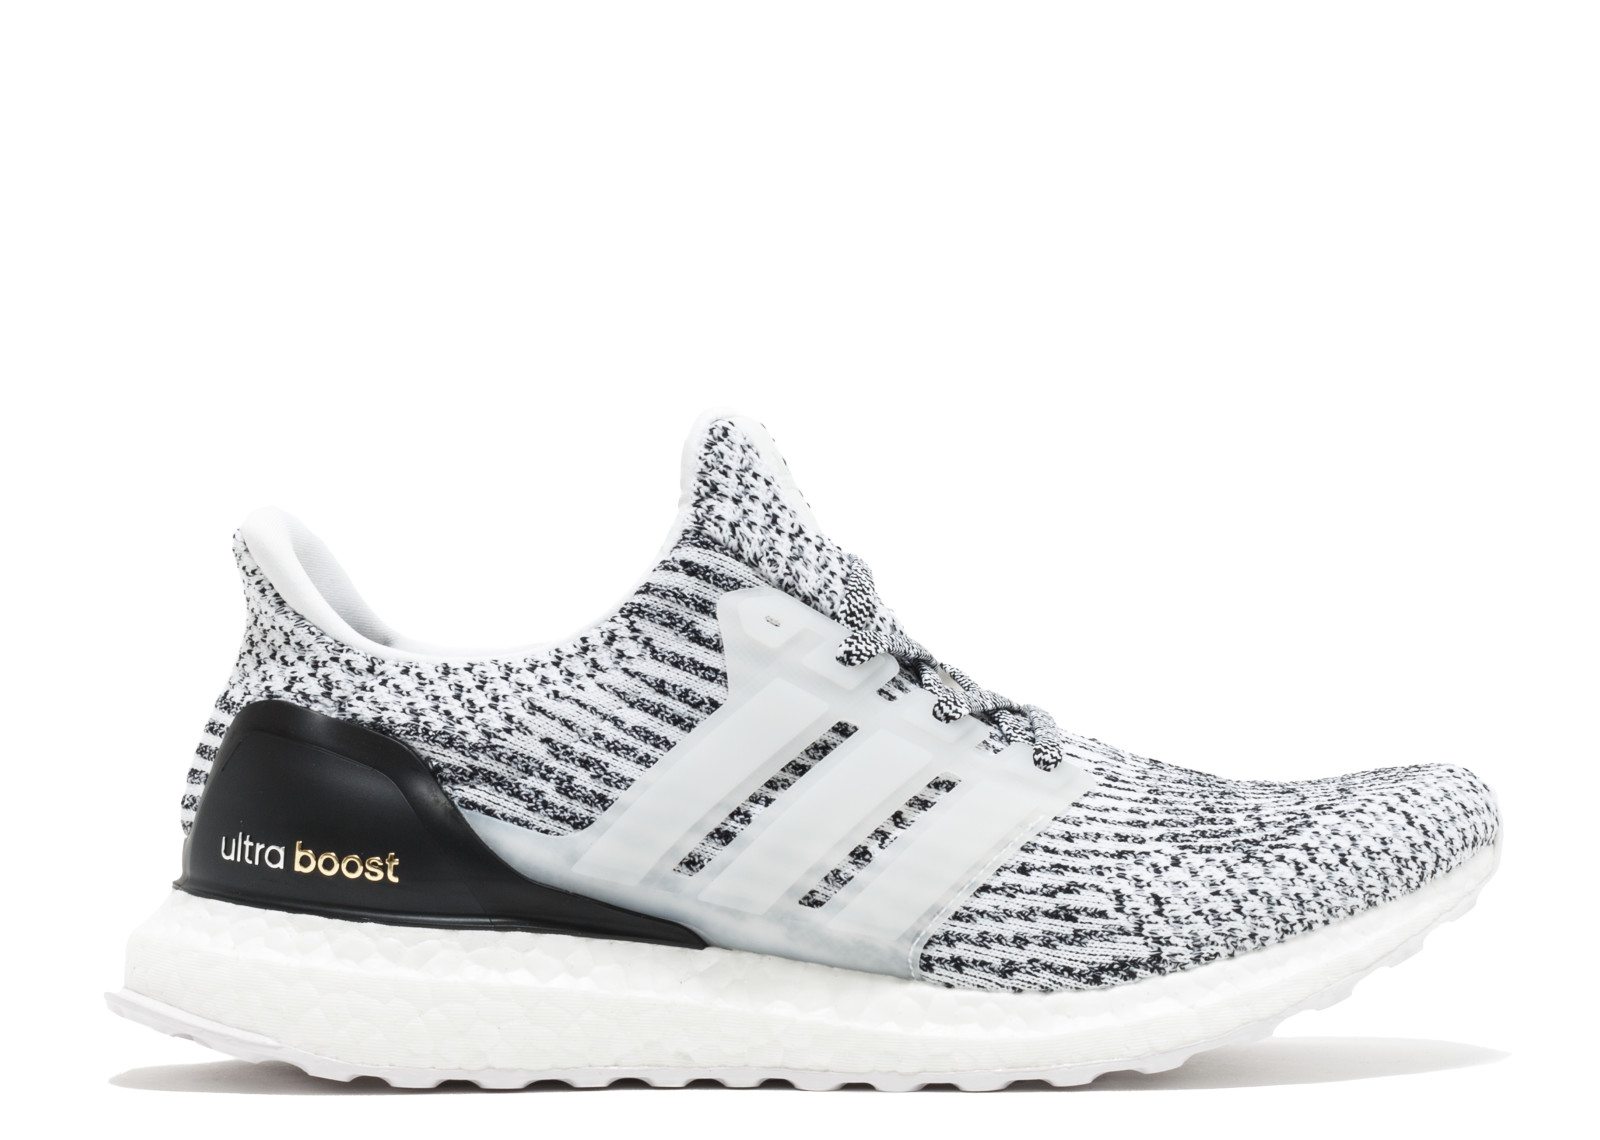 af5183795b9 Adidas Ultra boost Oreo 3.0 Mens Running Shoes - Alton Sports